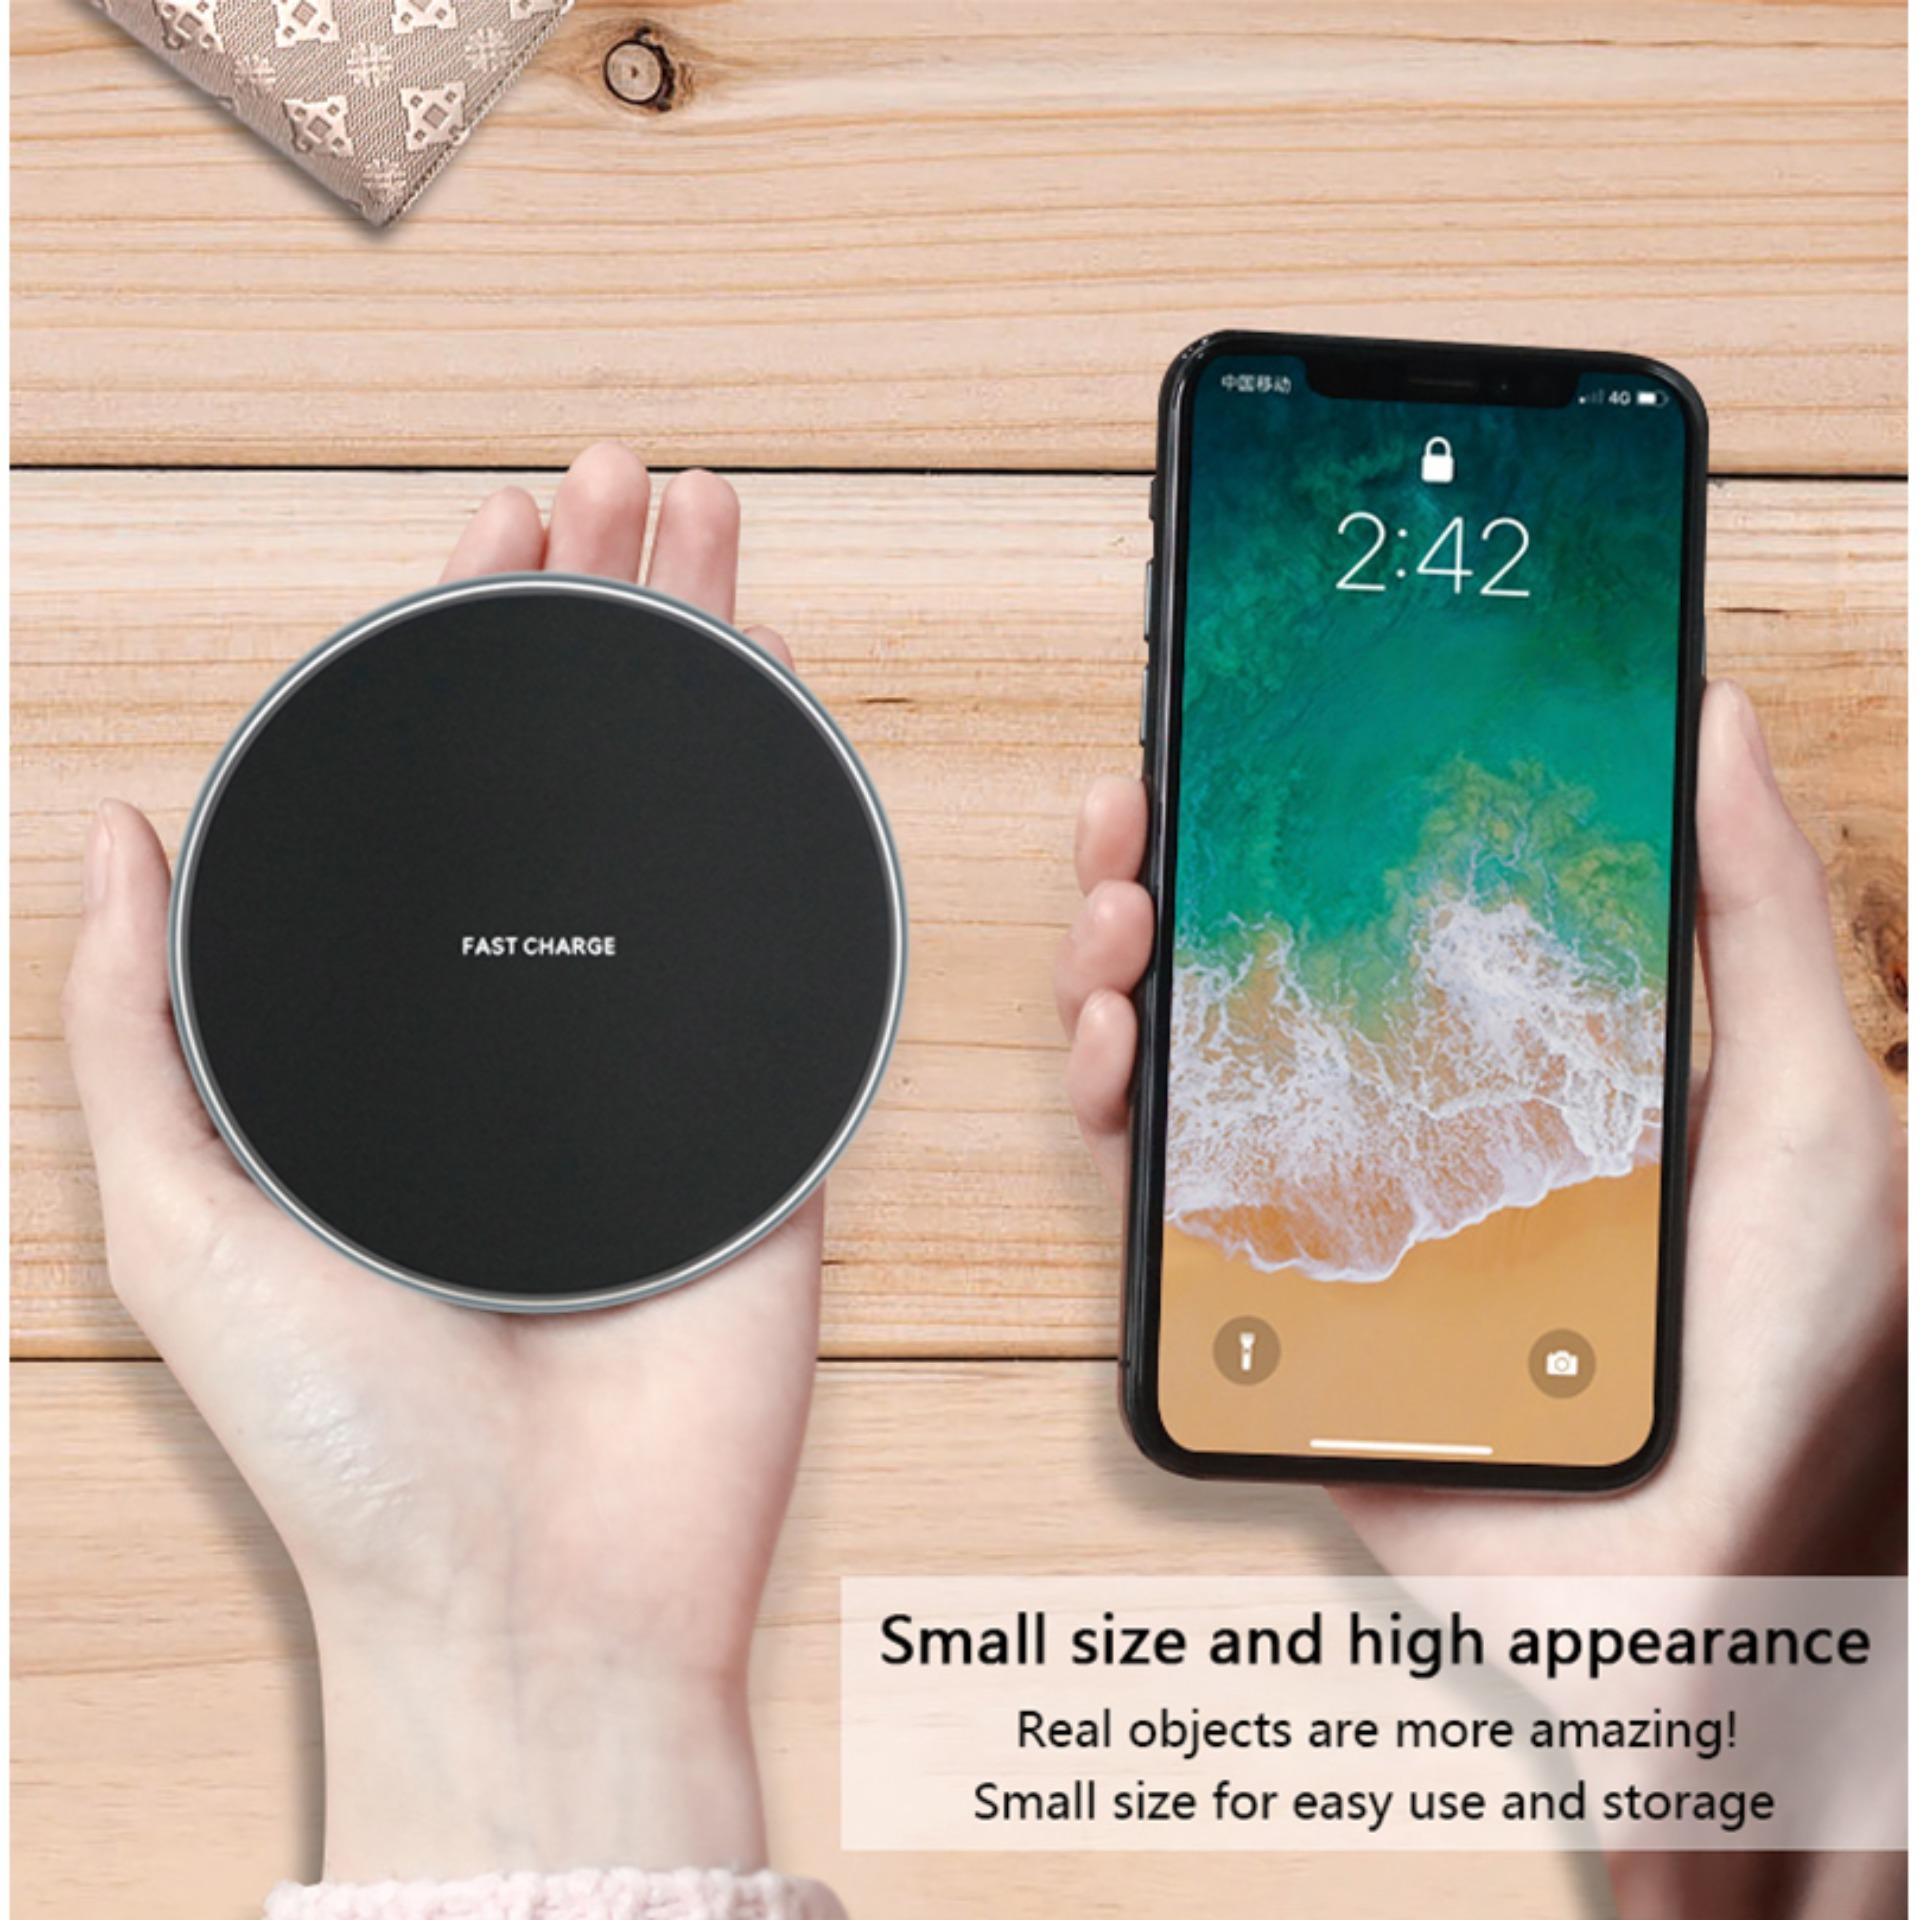 Wireless Charger For Sale Phone Prices Brands Samsung Galaxy A8 Free Anker Powerport Grey U Like Quick 30 Charging Pad S9